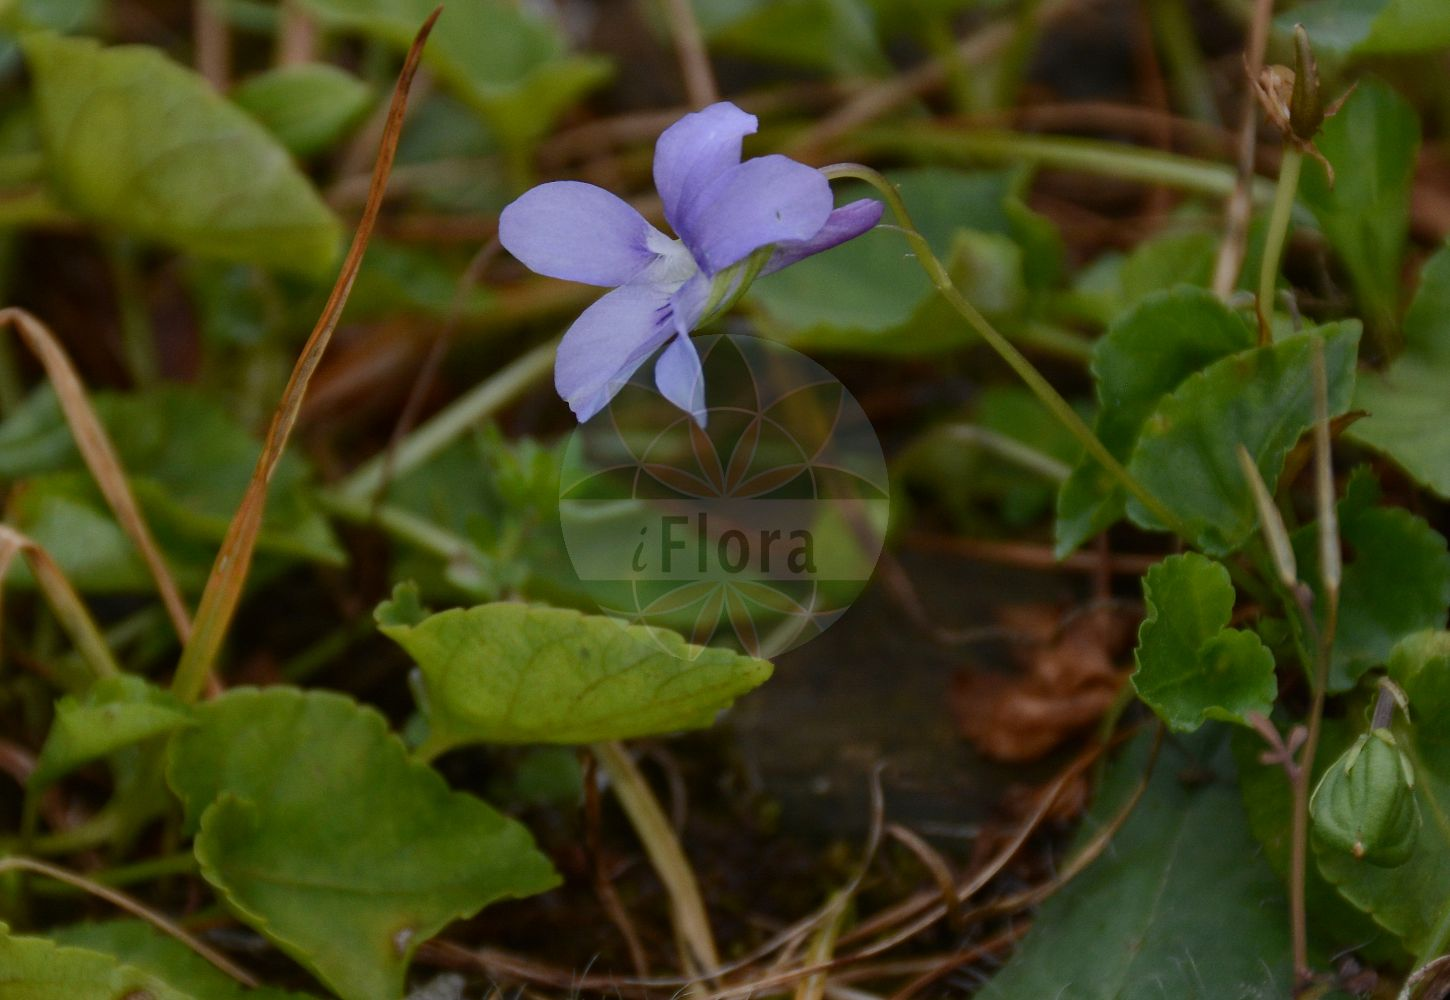 Foto von Viola collina (Huegel-Veilchen - Hill Violet). Das Foto wurde in Lyon, Auvergne-Rhône-Alpes, Frankreich aufgenommen. ---- Photo of Viola collina (Huegel-Veilchen - Hill Violet).The picture was taken in Lyon, Auvergne-Rhône-Alpes, France. (Viola collina,Huegel-Veilchen,Hill Violet,Viola porphyrea,Viola,Veilchen,violet,Violaceae,Veilchengewaechse,Violet family)